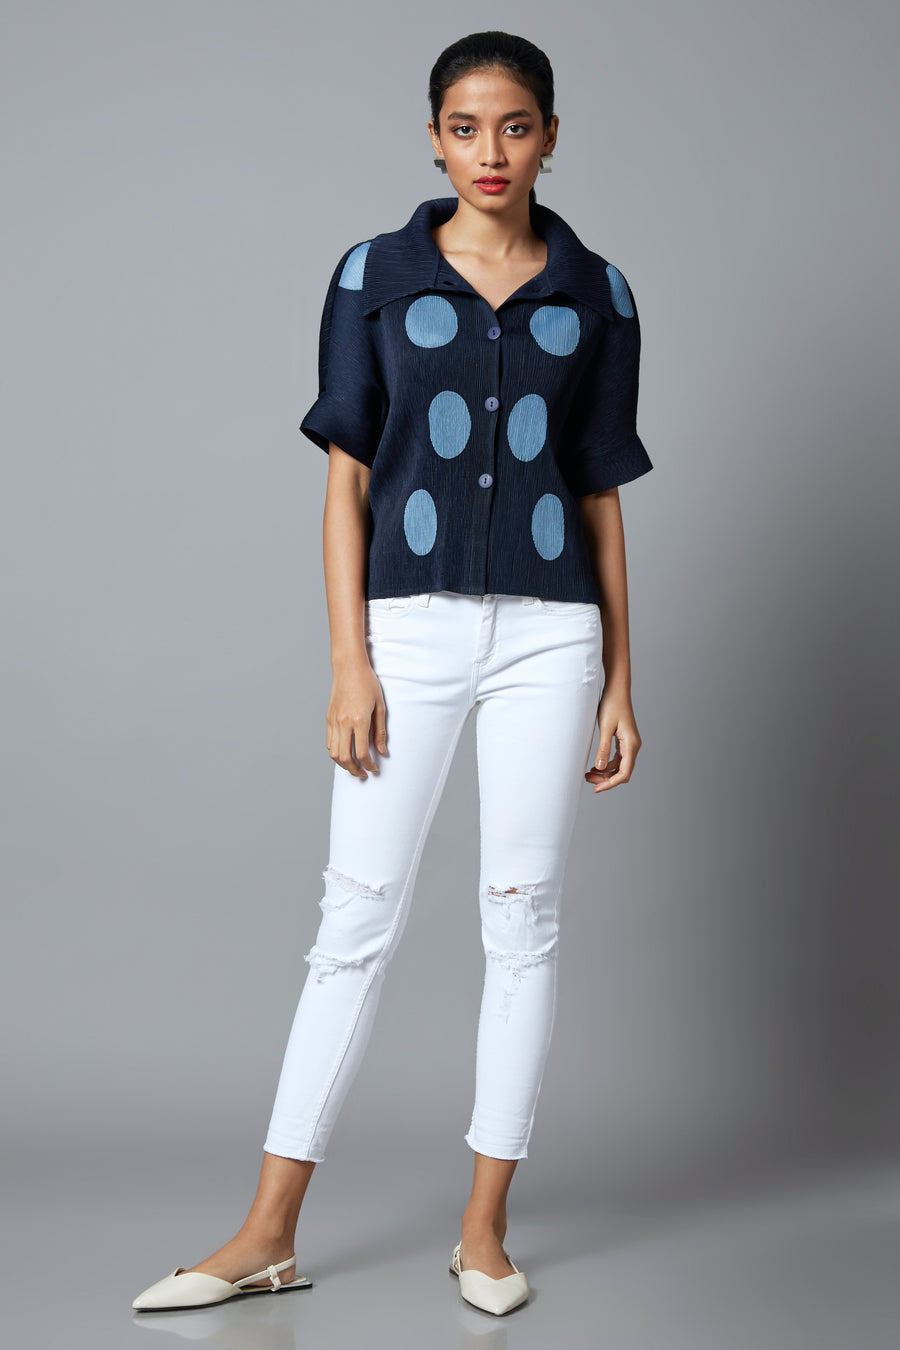 Shirt Top Polka Dot - Navy